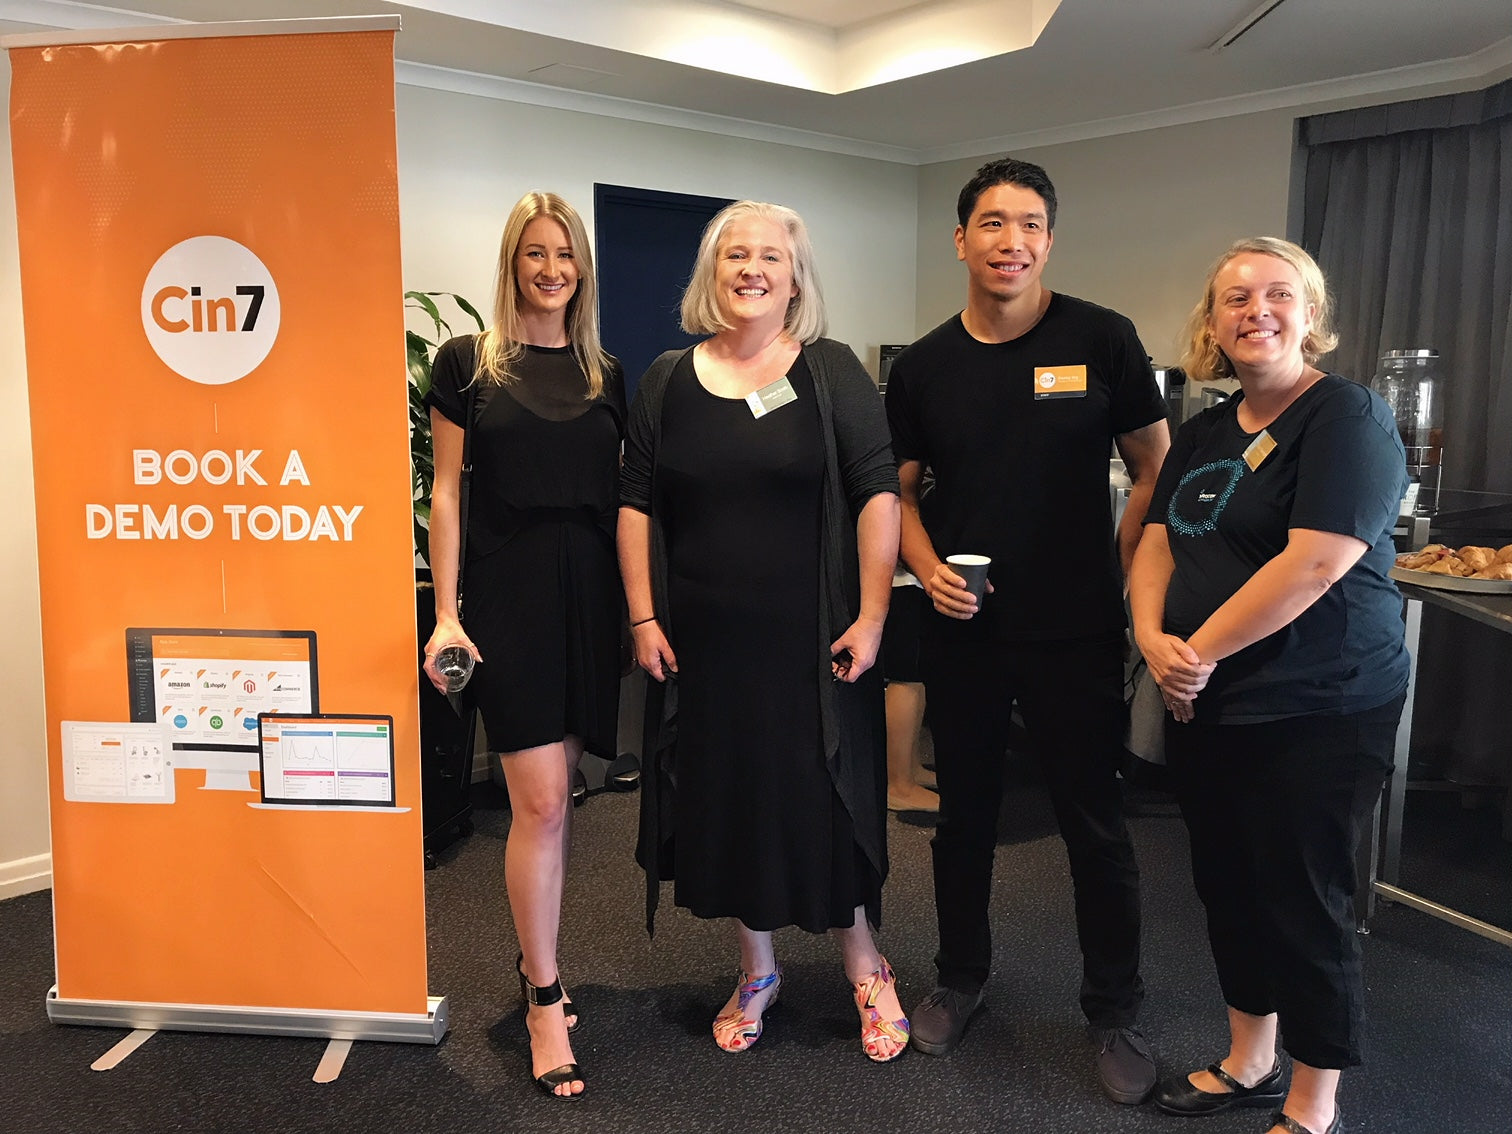 RearViz at Cin7's Retailer's Breakfast: Get Amazon Australia Ready!